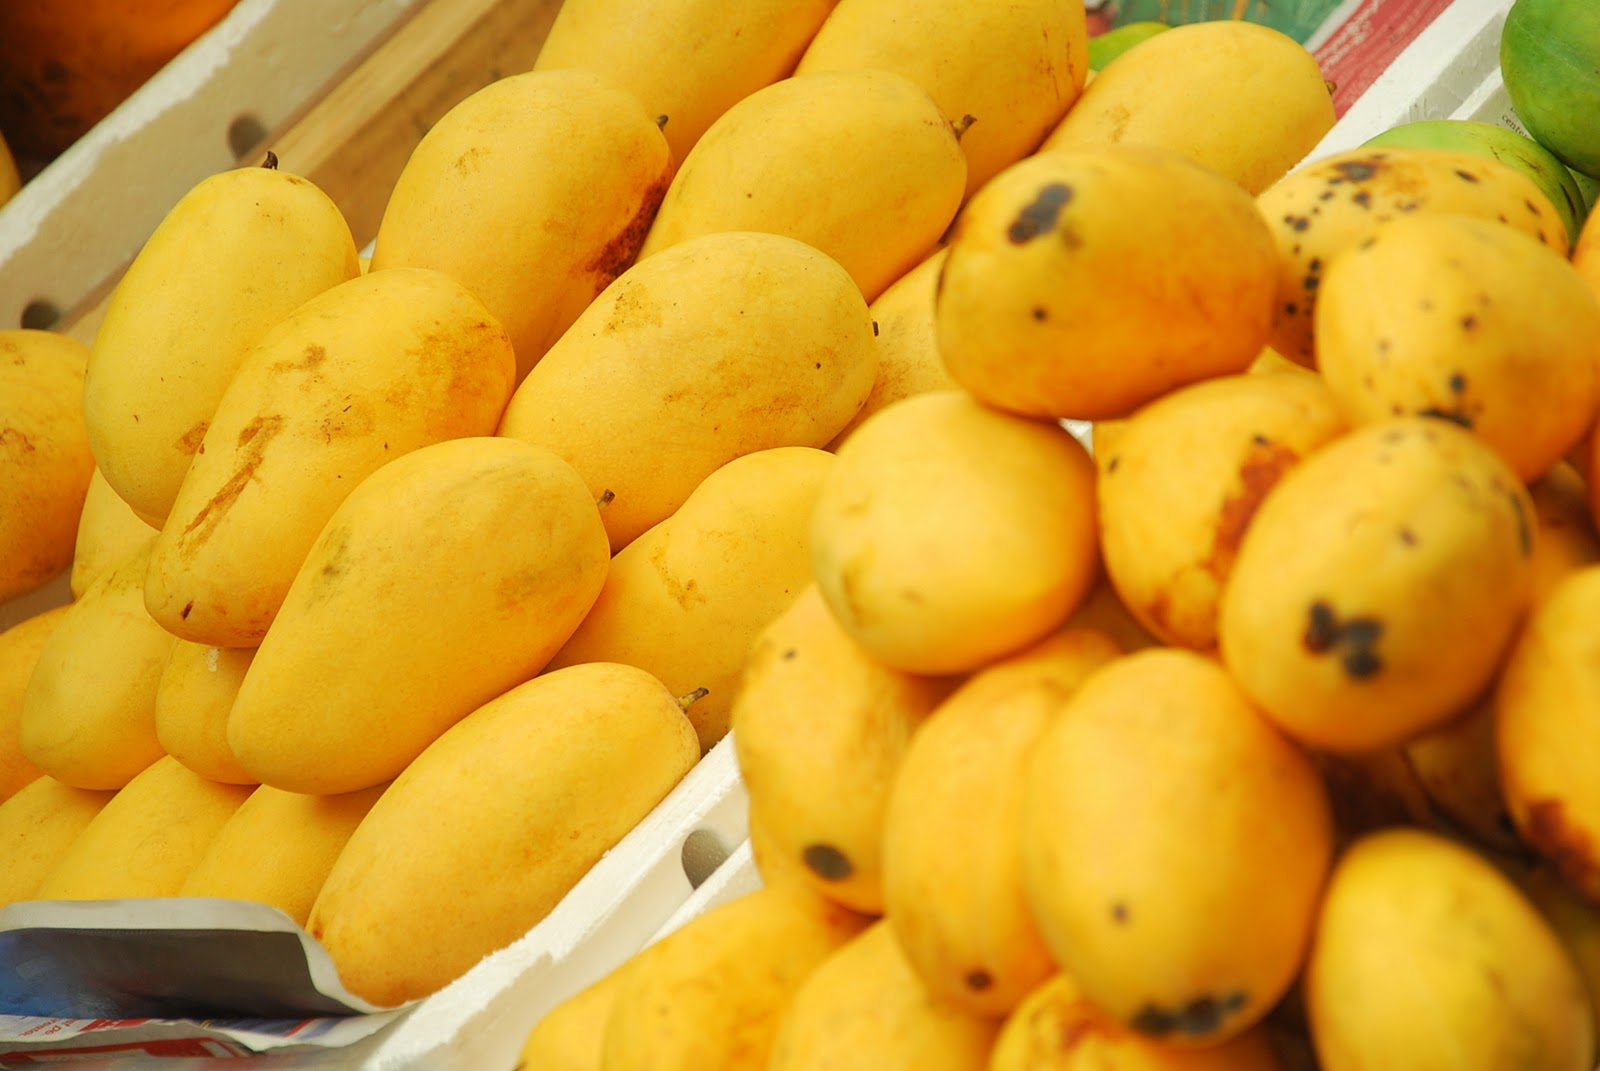 Mangoes for export